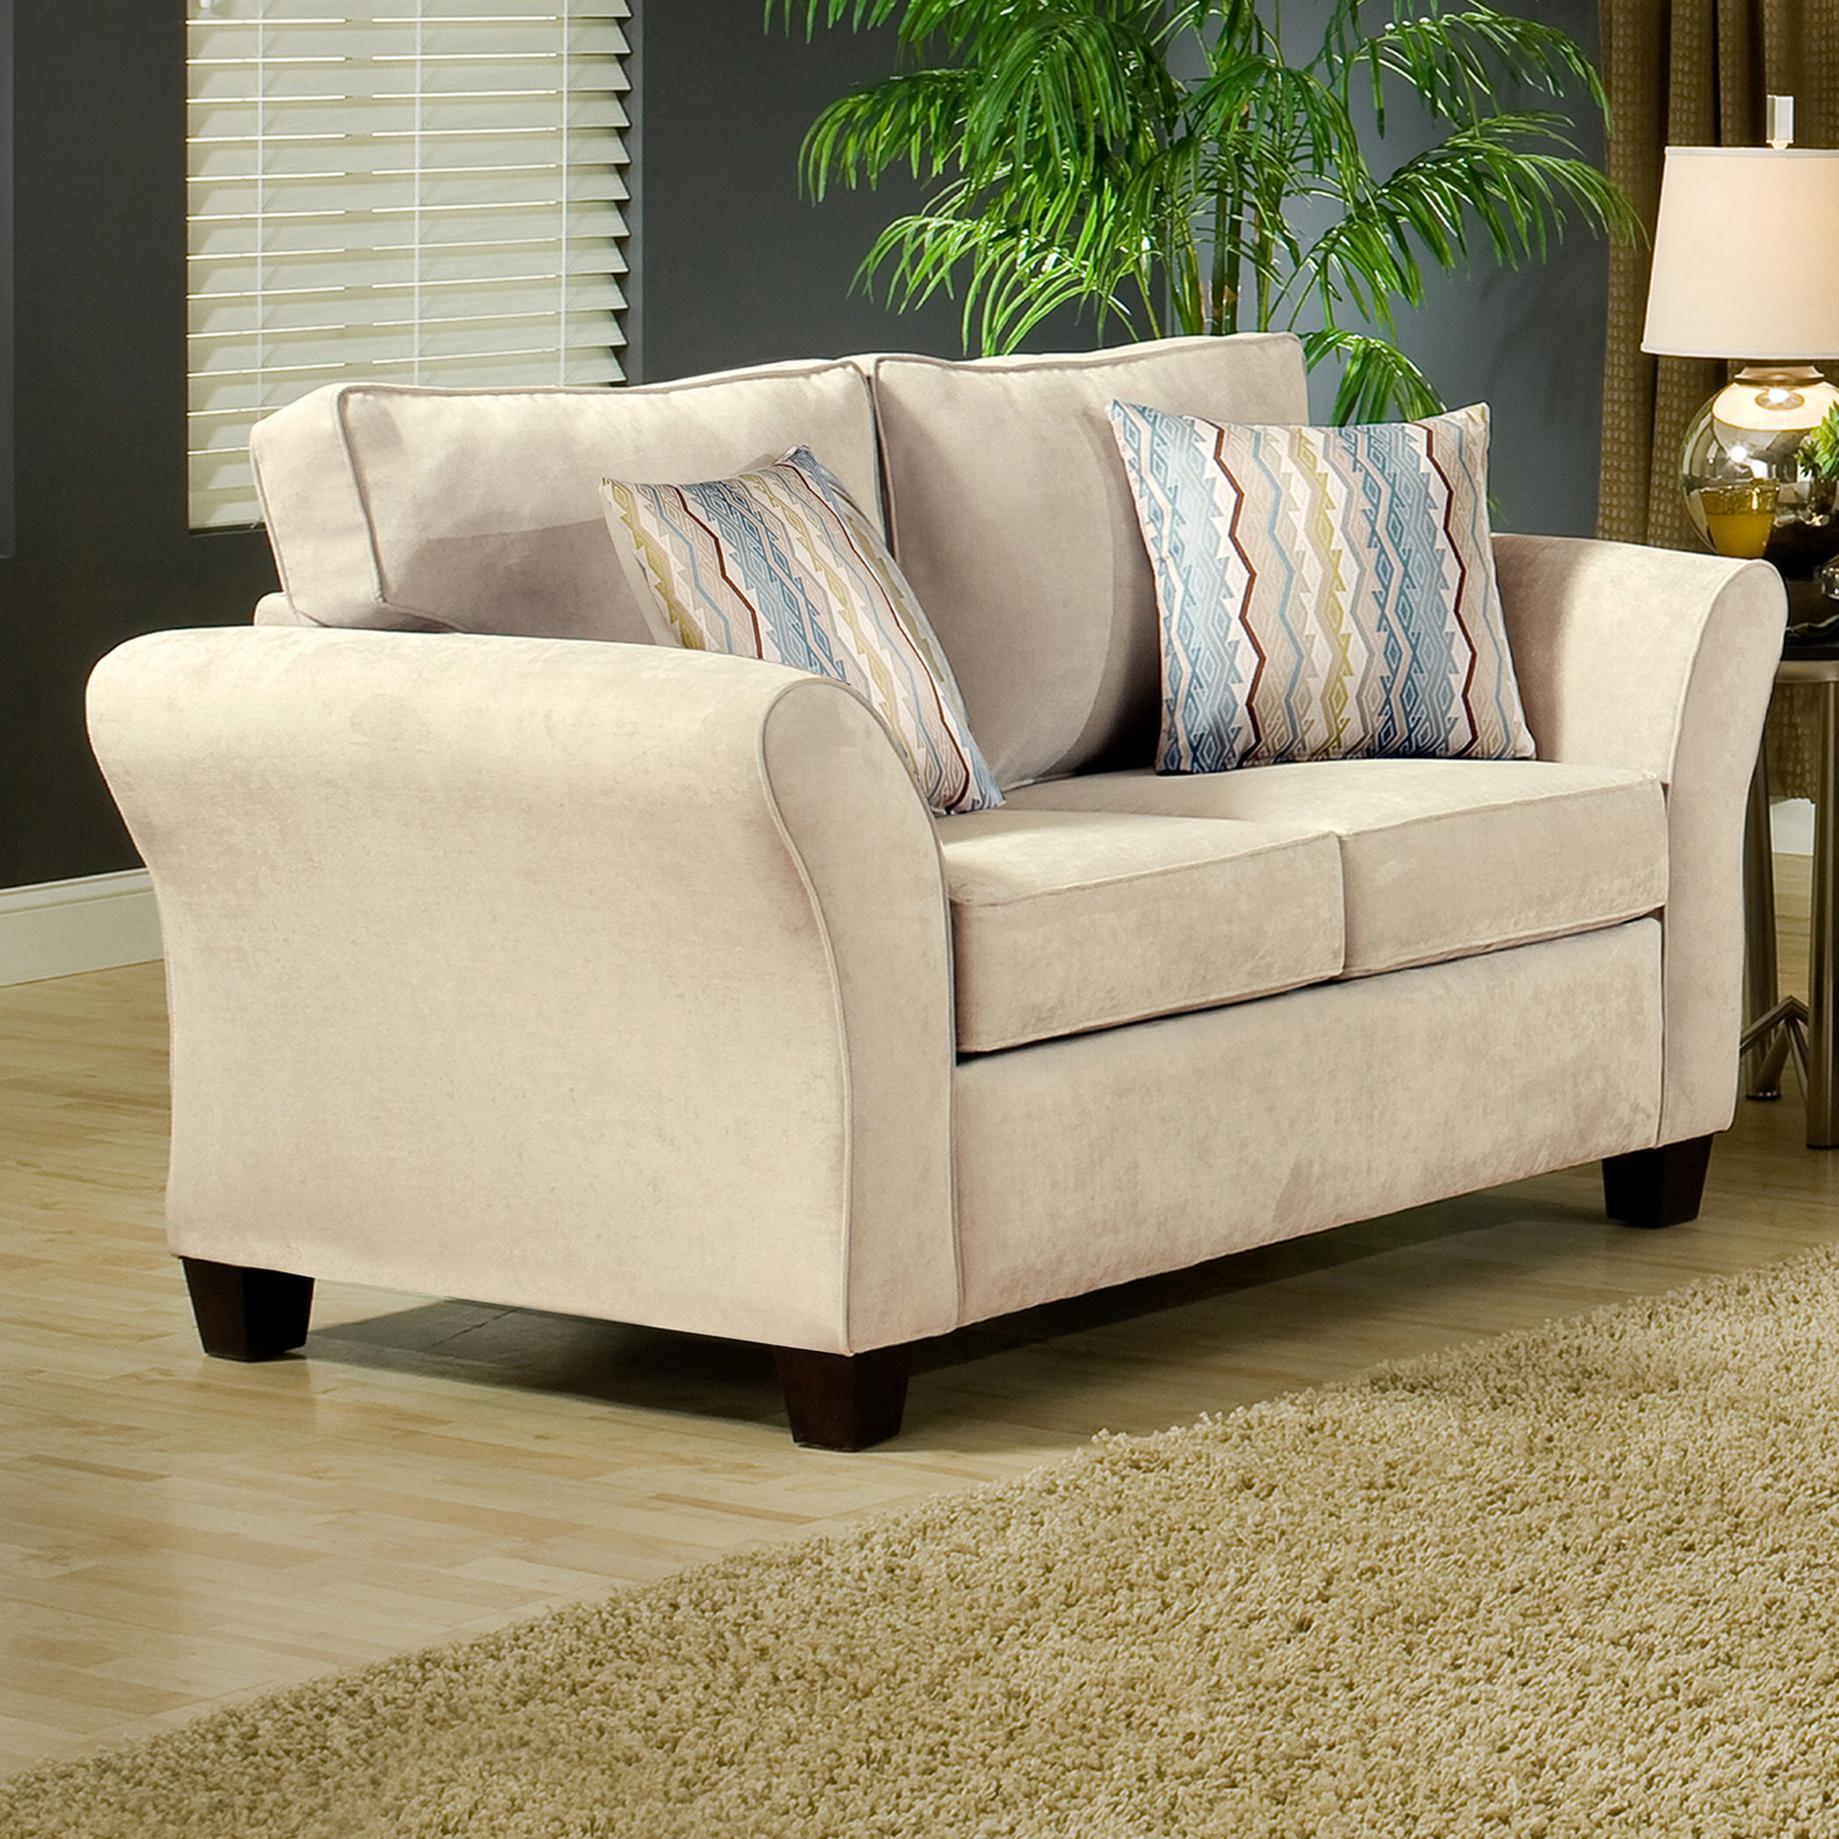 Belfort Essentials Addison Love Seat - Item Number: 8400-20